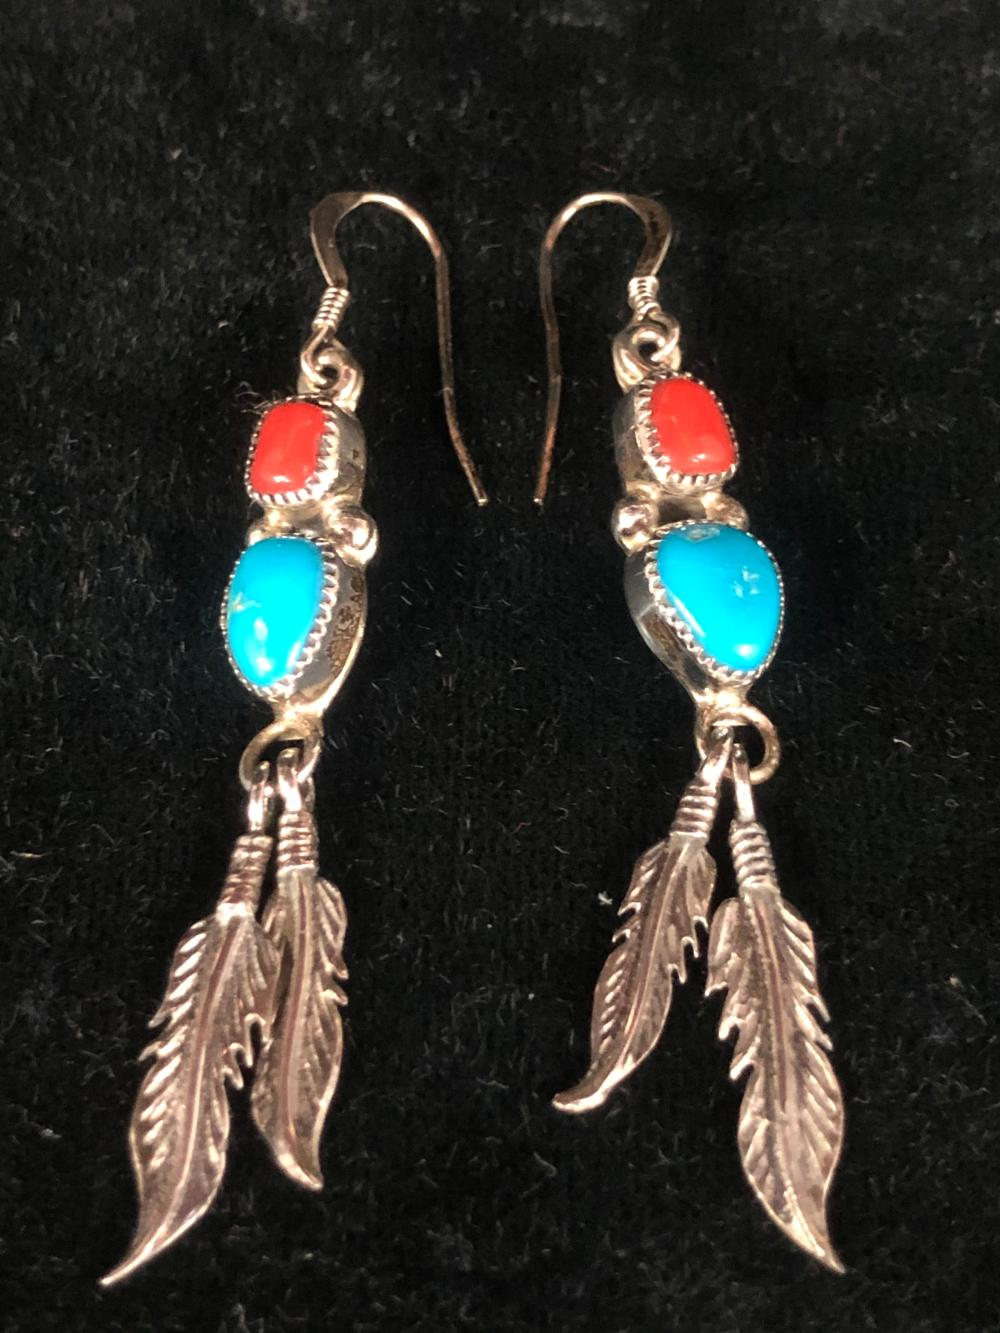 Turquoise & coral with feathers sterling silver earrings